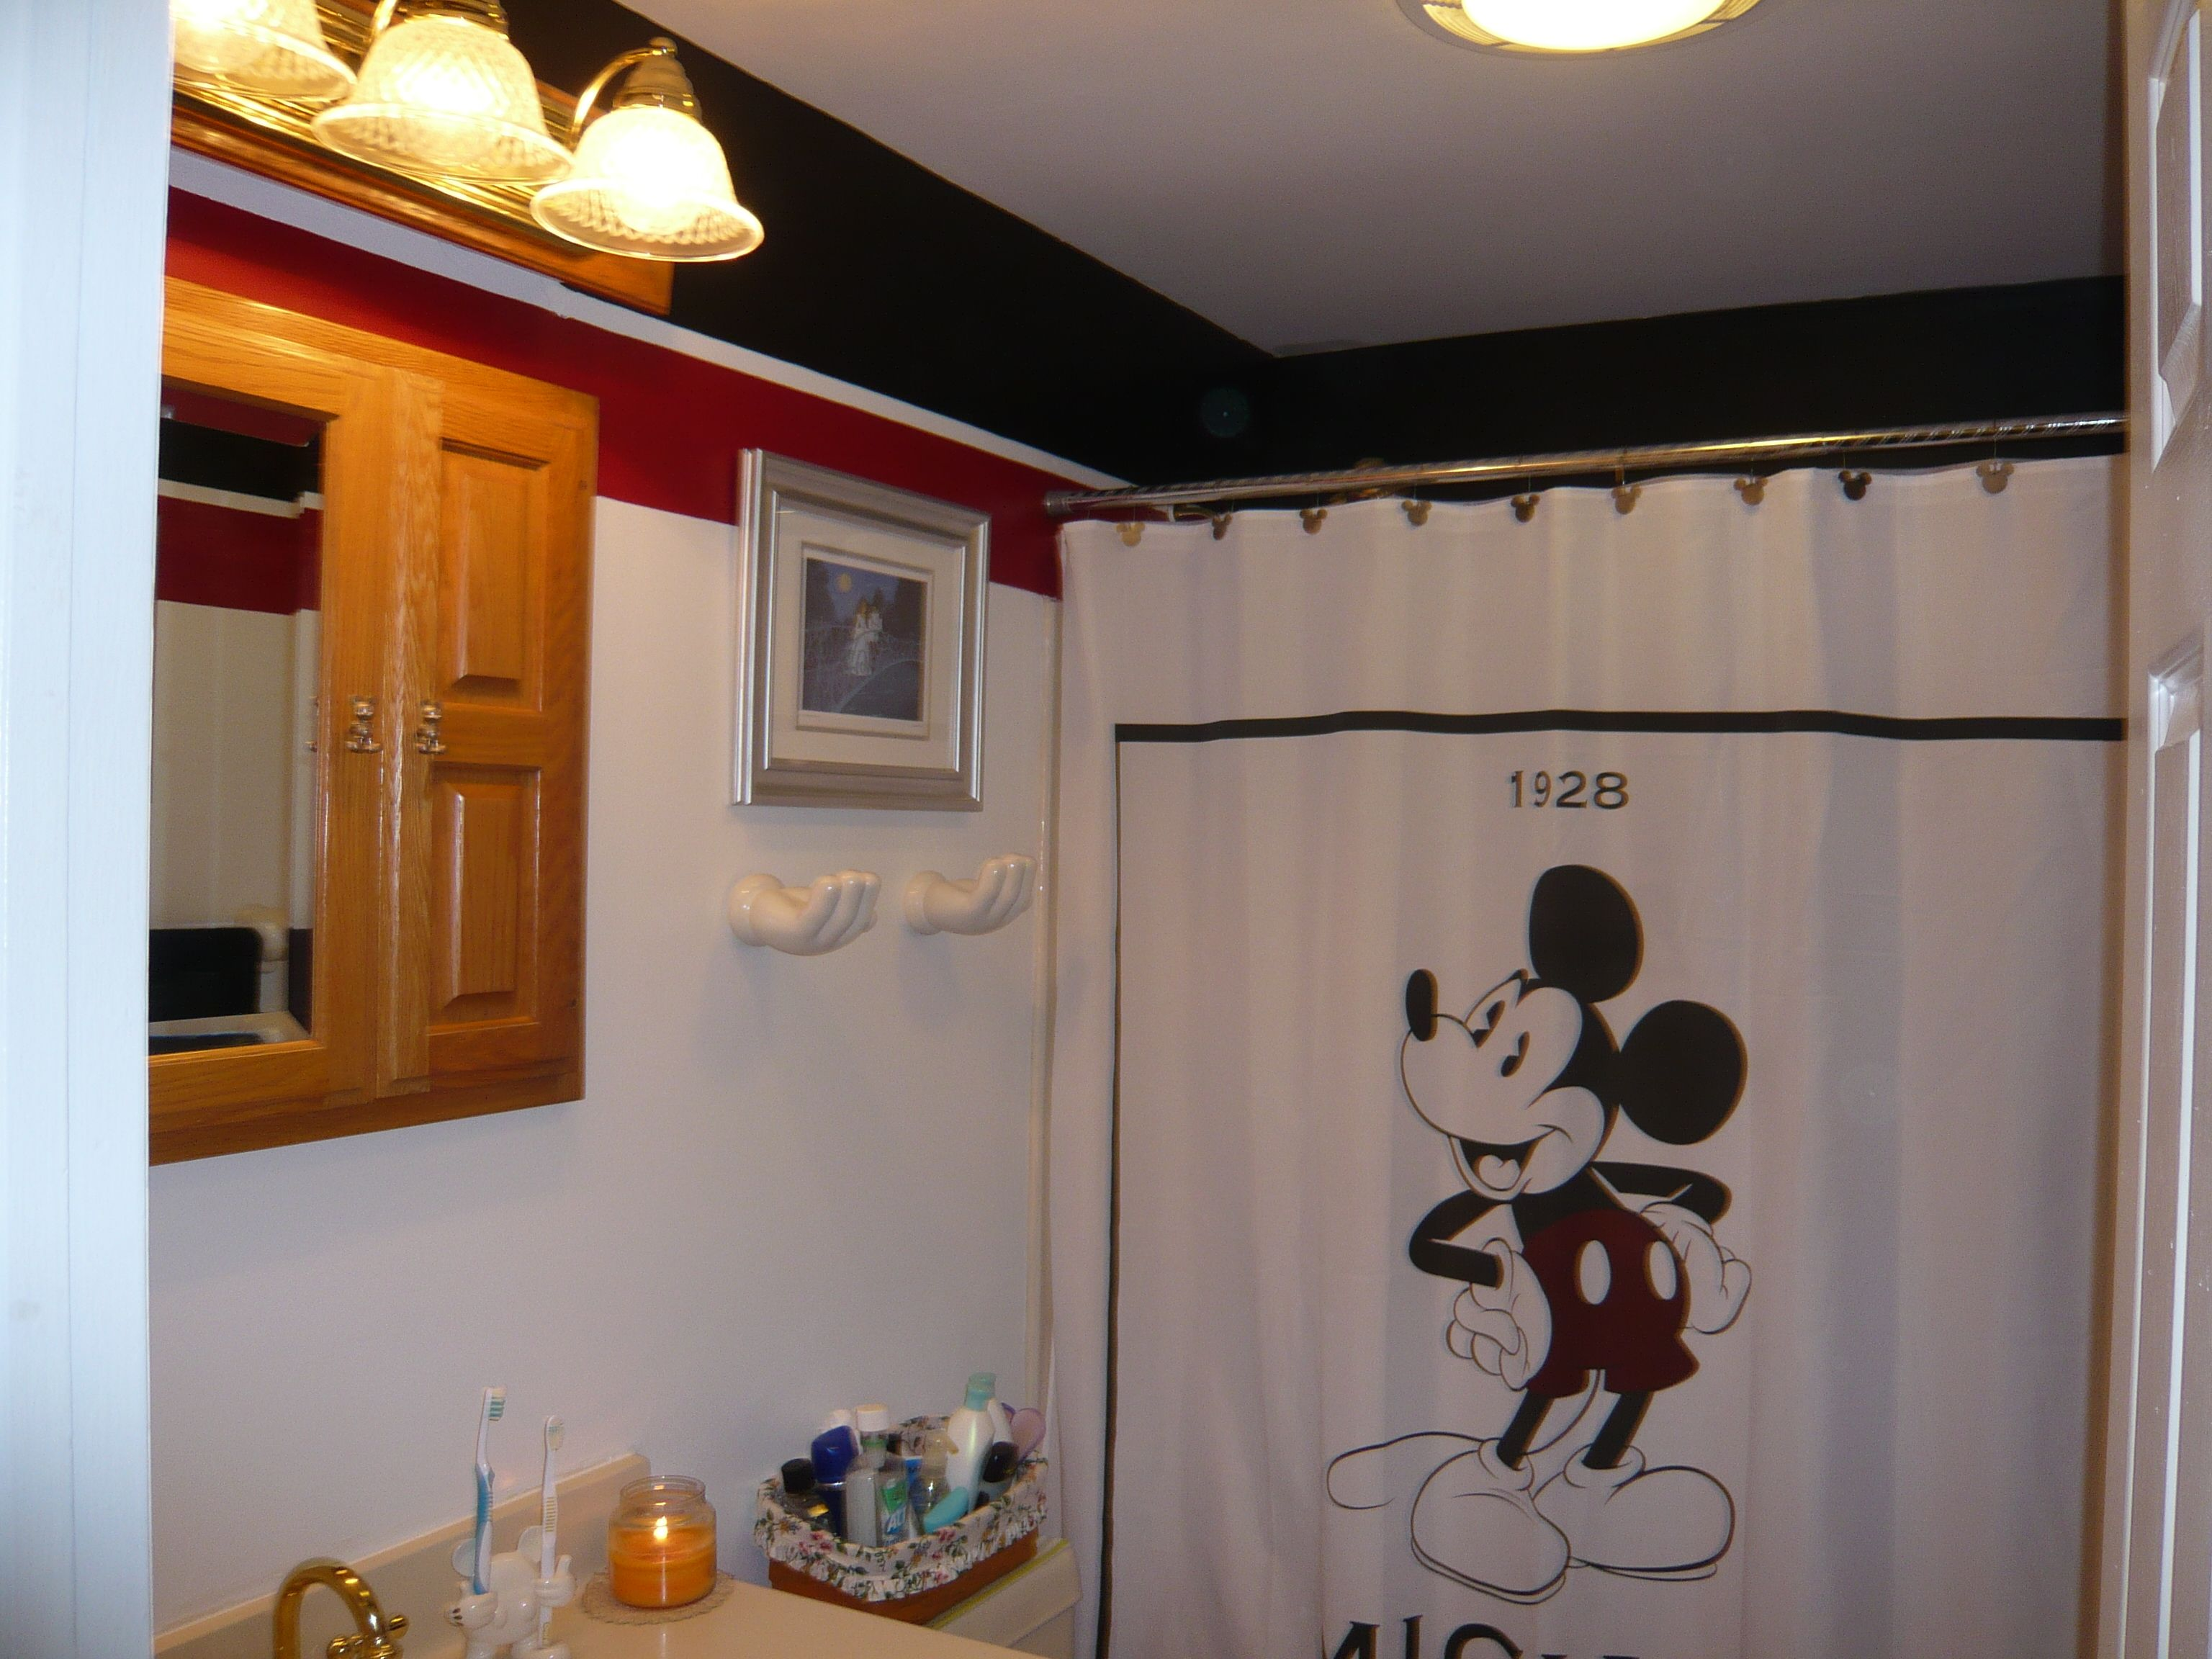 Mickey Mouse Bathroom - Horizontal stripes are a great way to make a space visually appear larger.